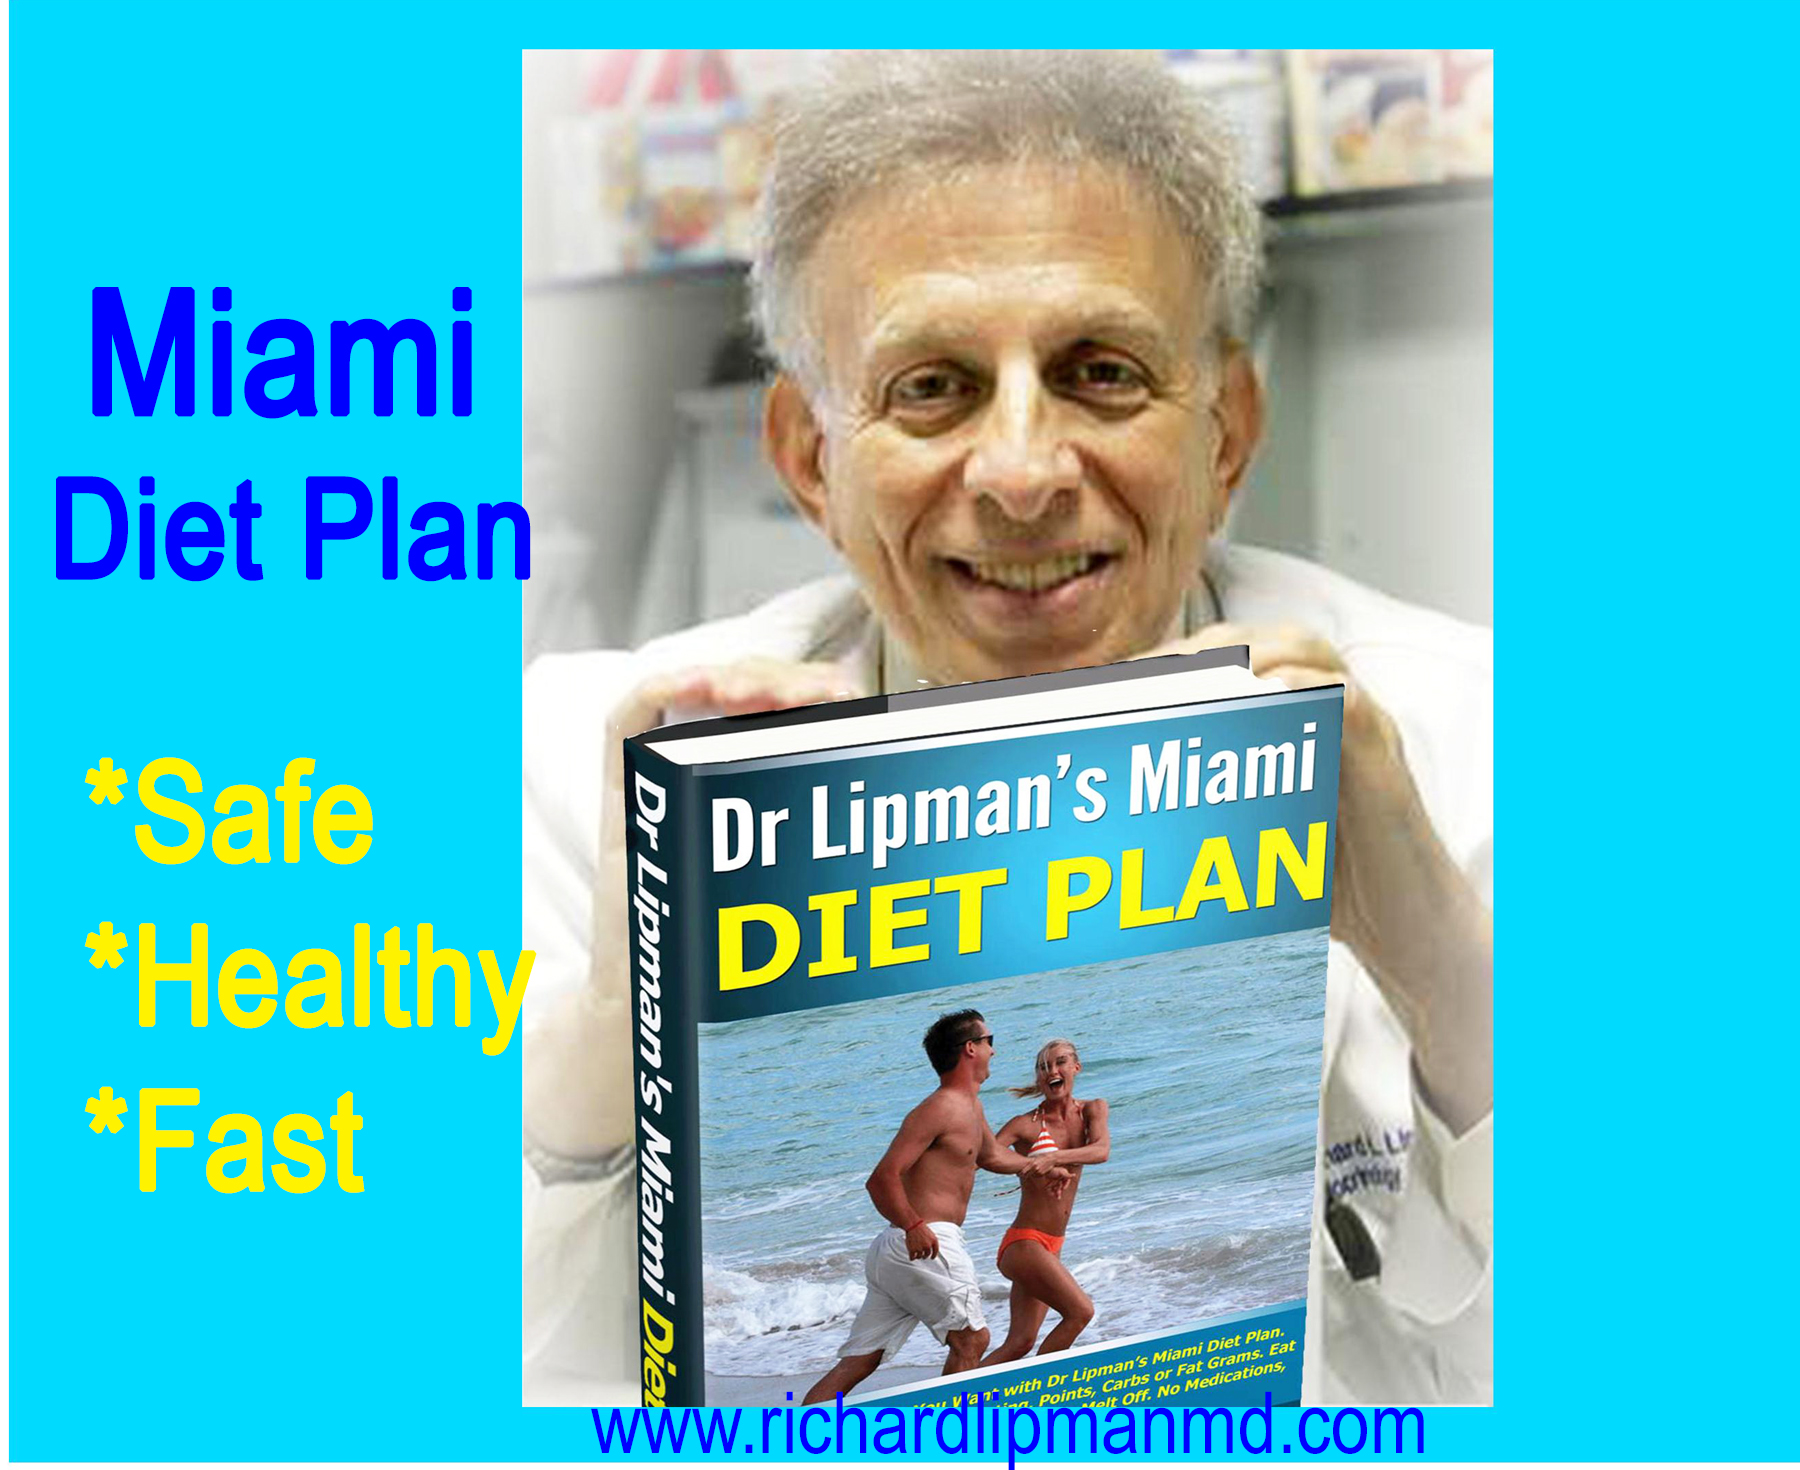 Miami diet plan, safe, fast, healthy weight loss without exercise and cravings